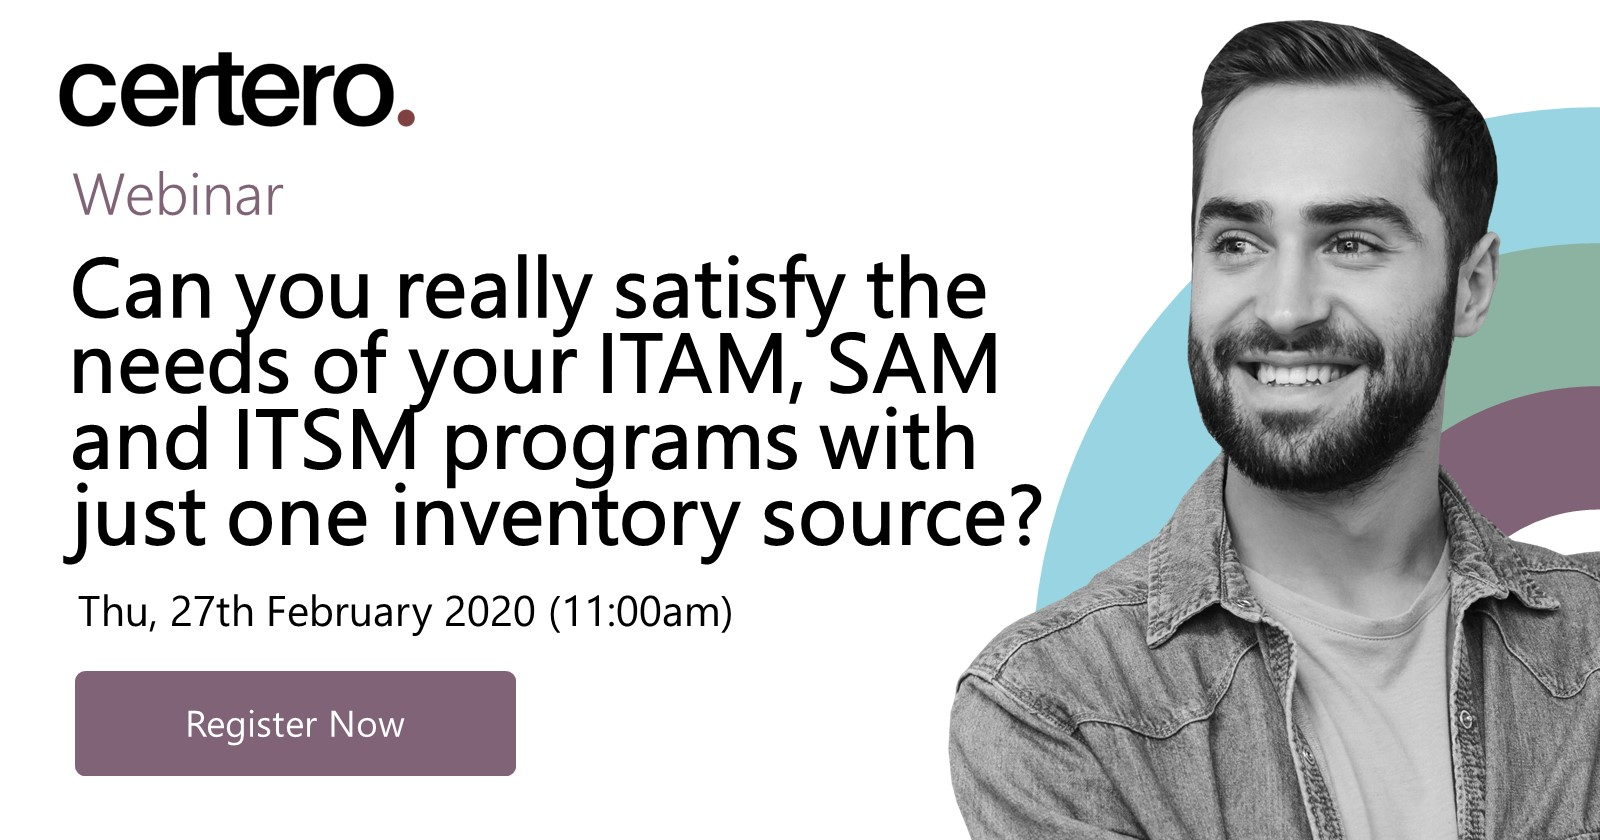 Can You Really Satisfy the Needs of Your ITAM, SAM and ITSM Programs With Just One Inventory Source?